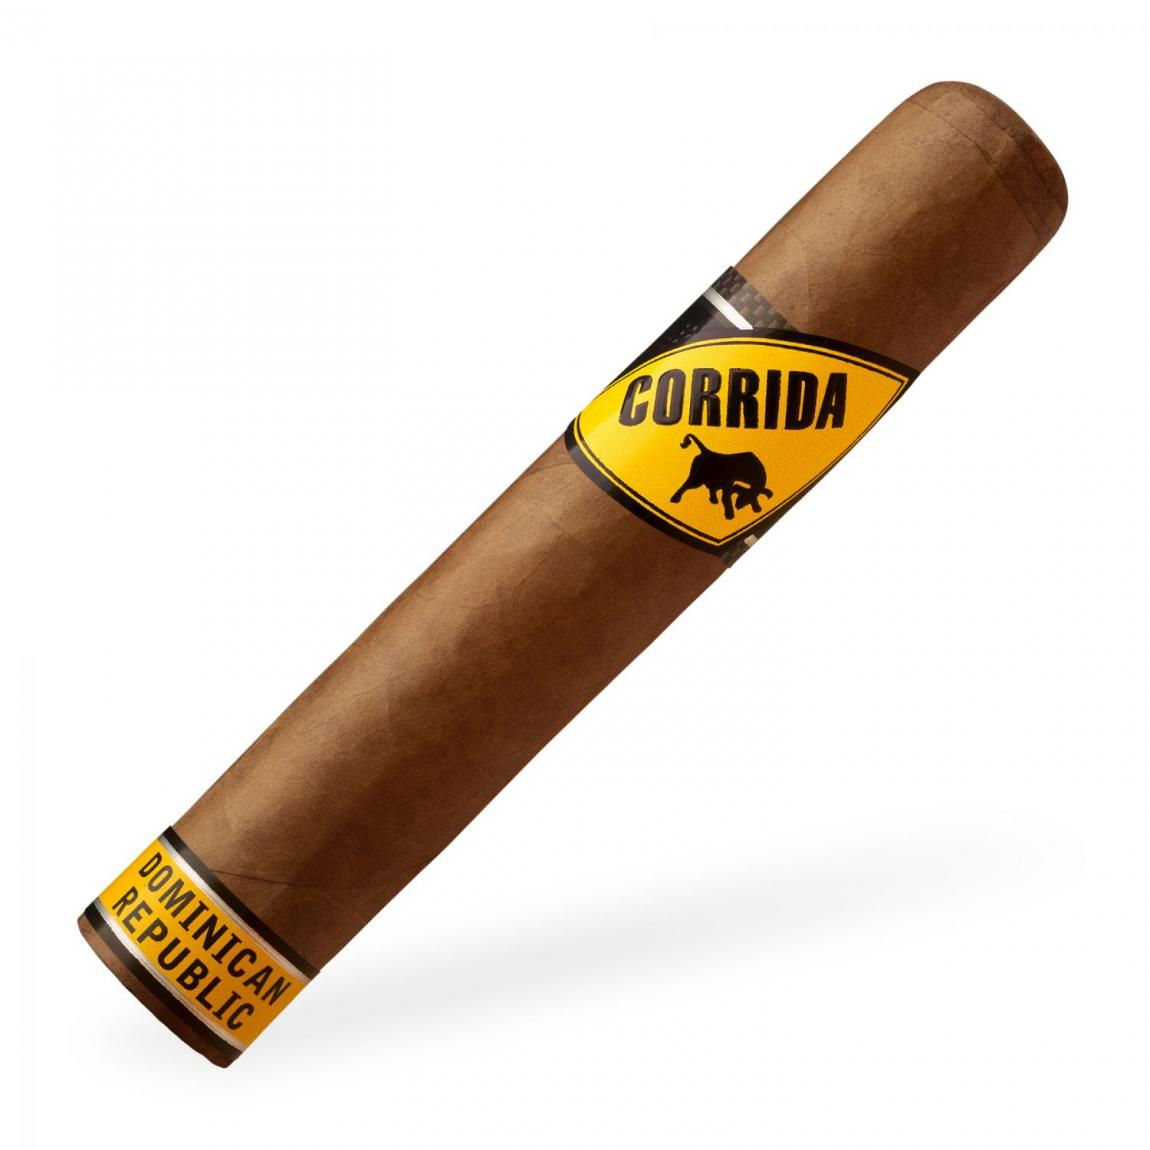 Corrida Dominican Republic Robusto +